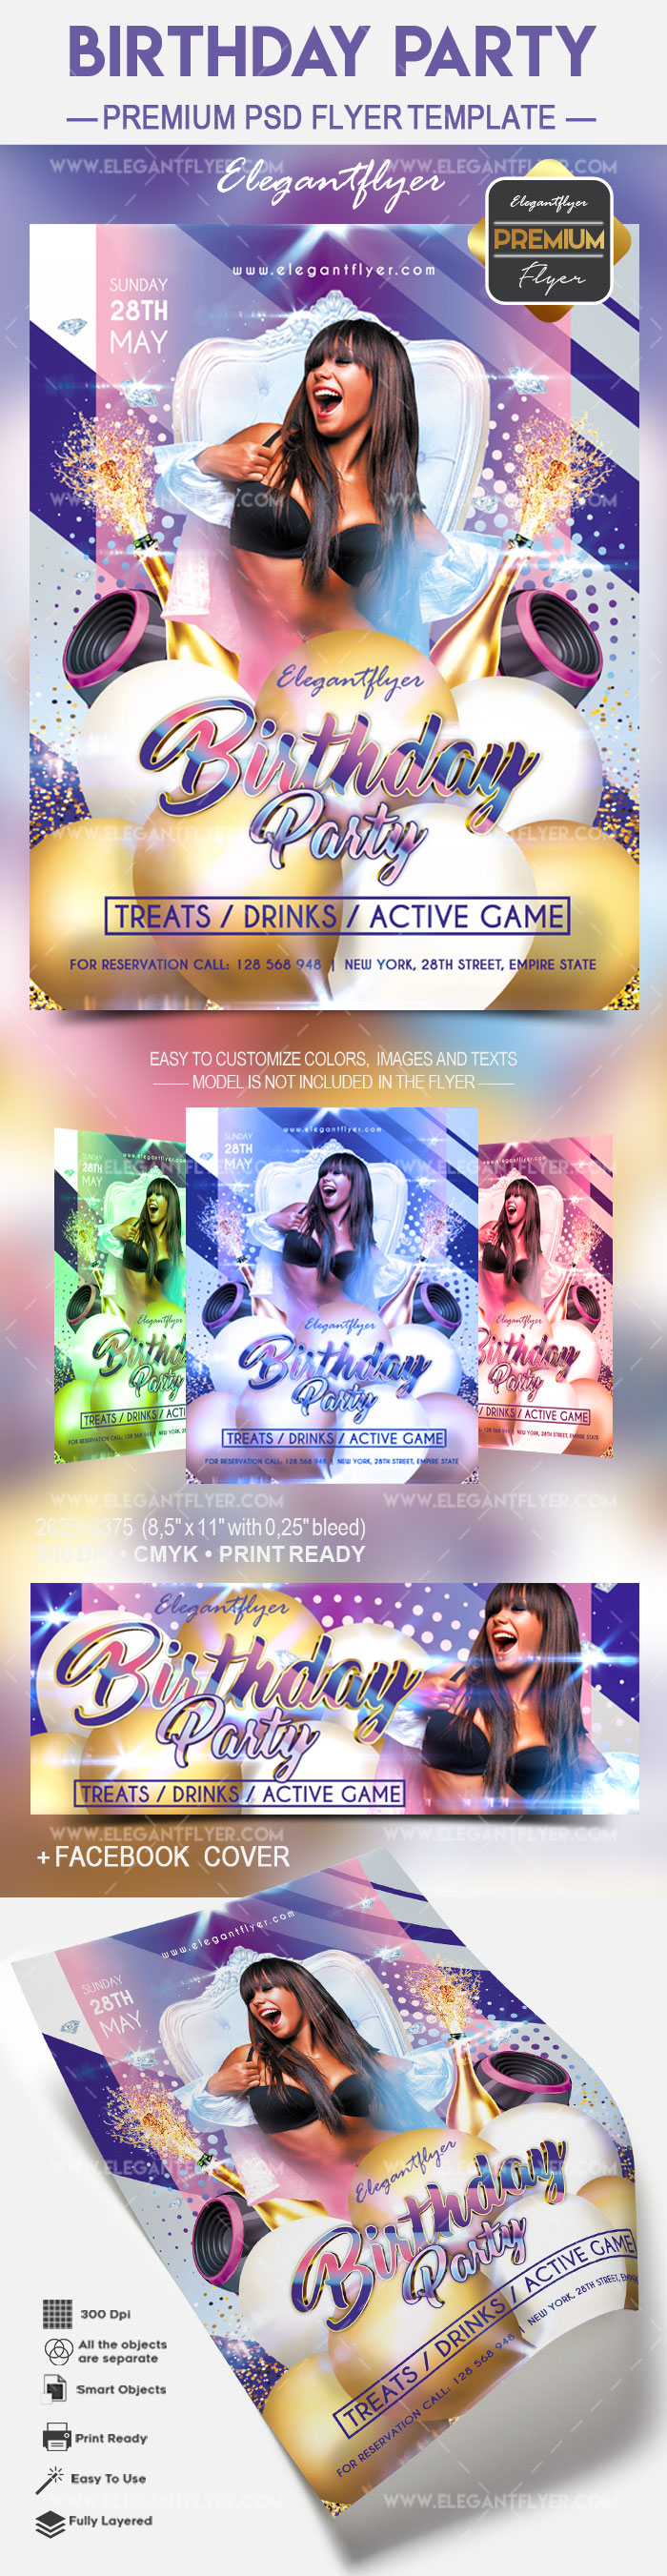 birthday party flyer template by elegantflyer